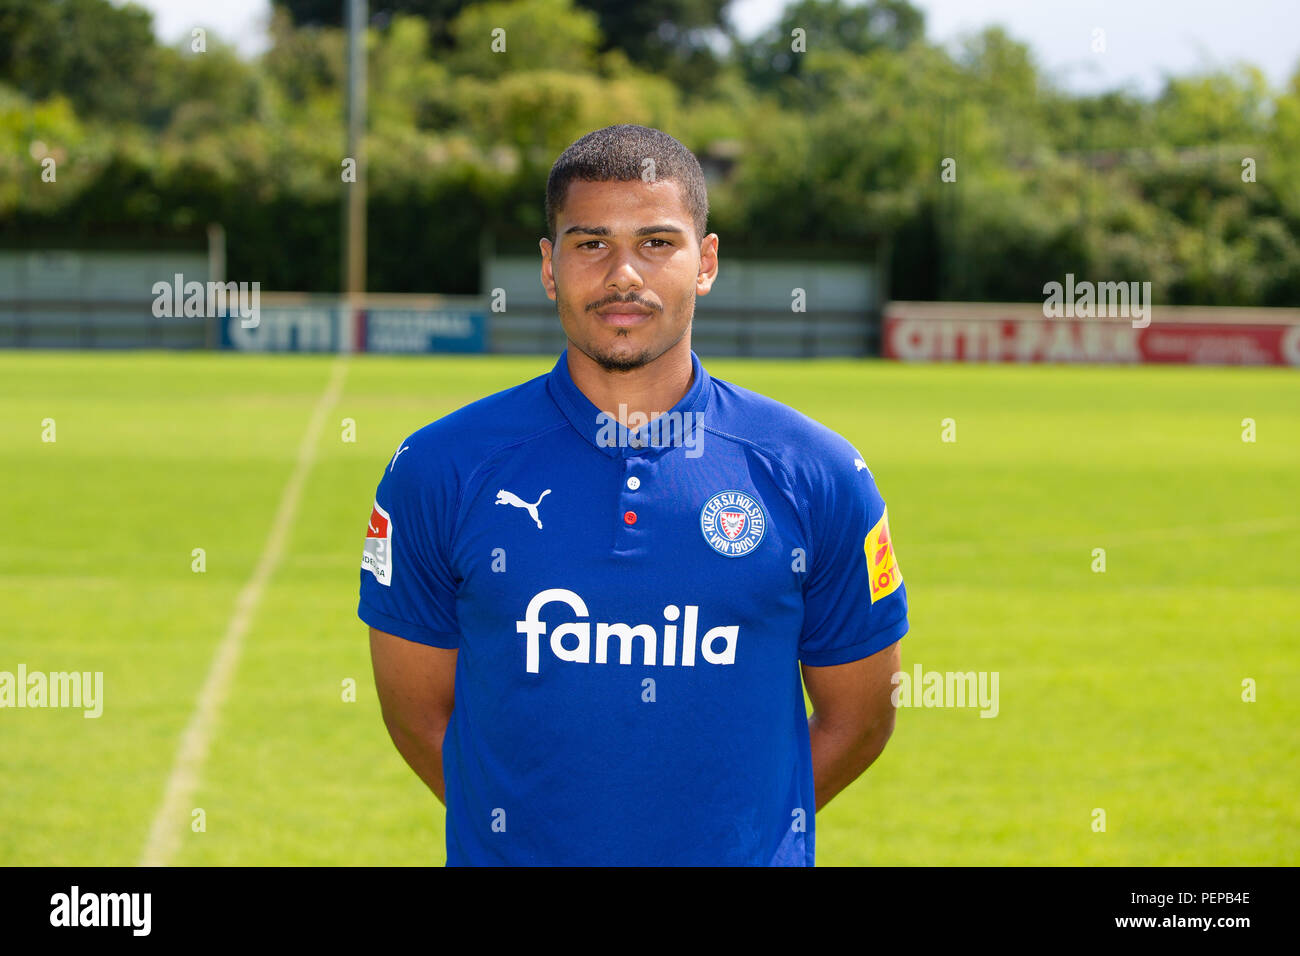 Kiel Germany 26th July 2018 2nd German Bundesliga Official Photocall Holstein Kiel For Season 2018 19 In Kiel Germany Noah Awuku Credit Frank Molter Dpa Usage Worldwide Dpa Alamy Live News Stock Photo Alamy